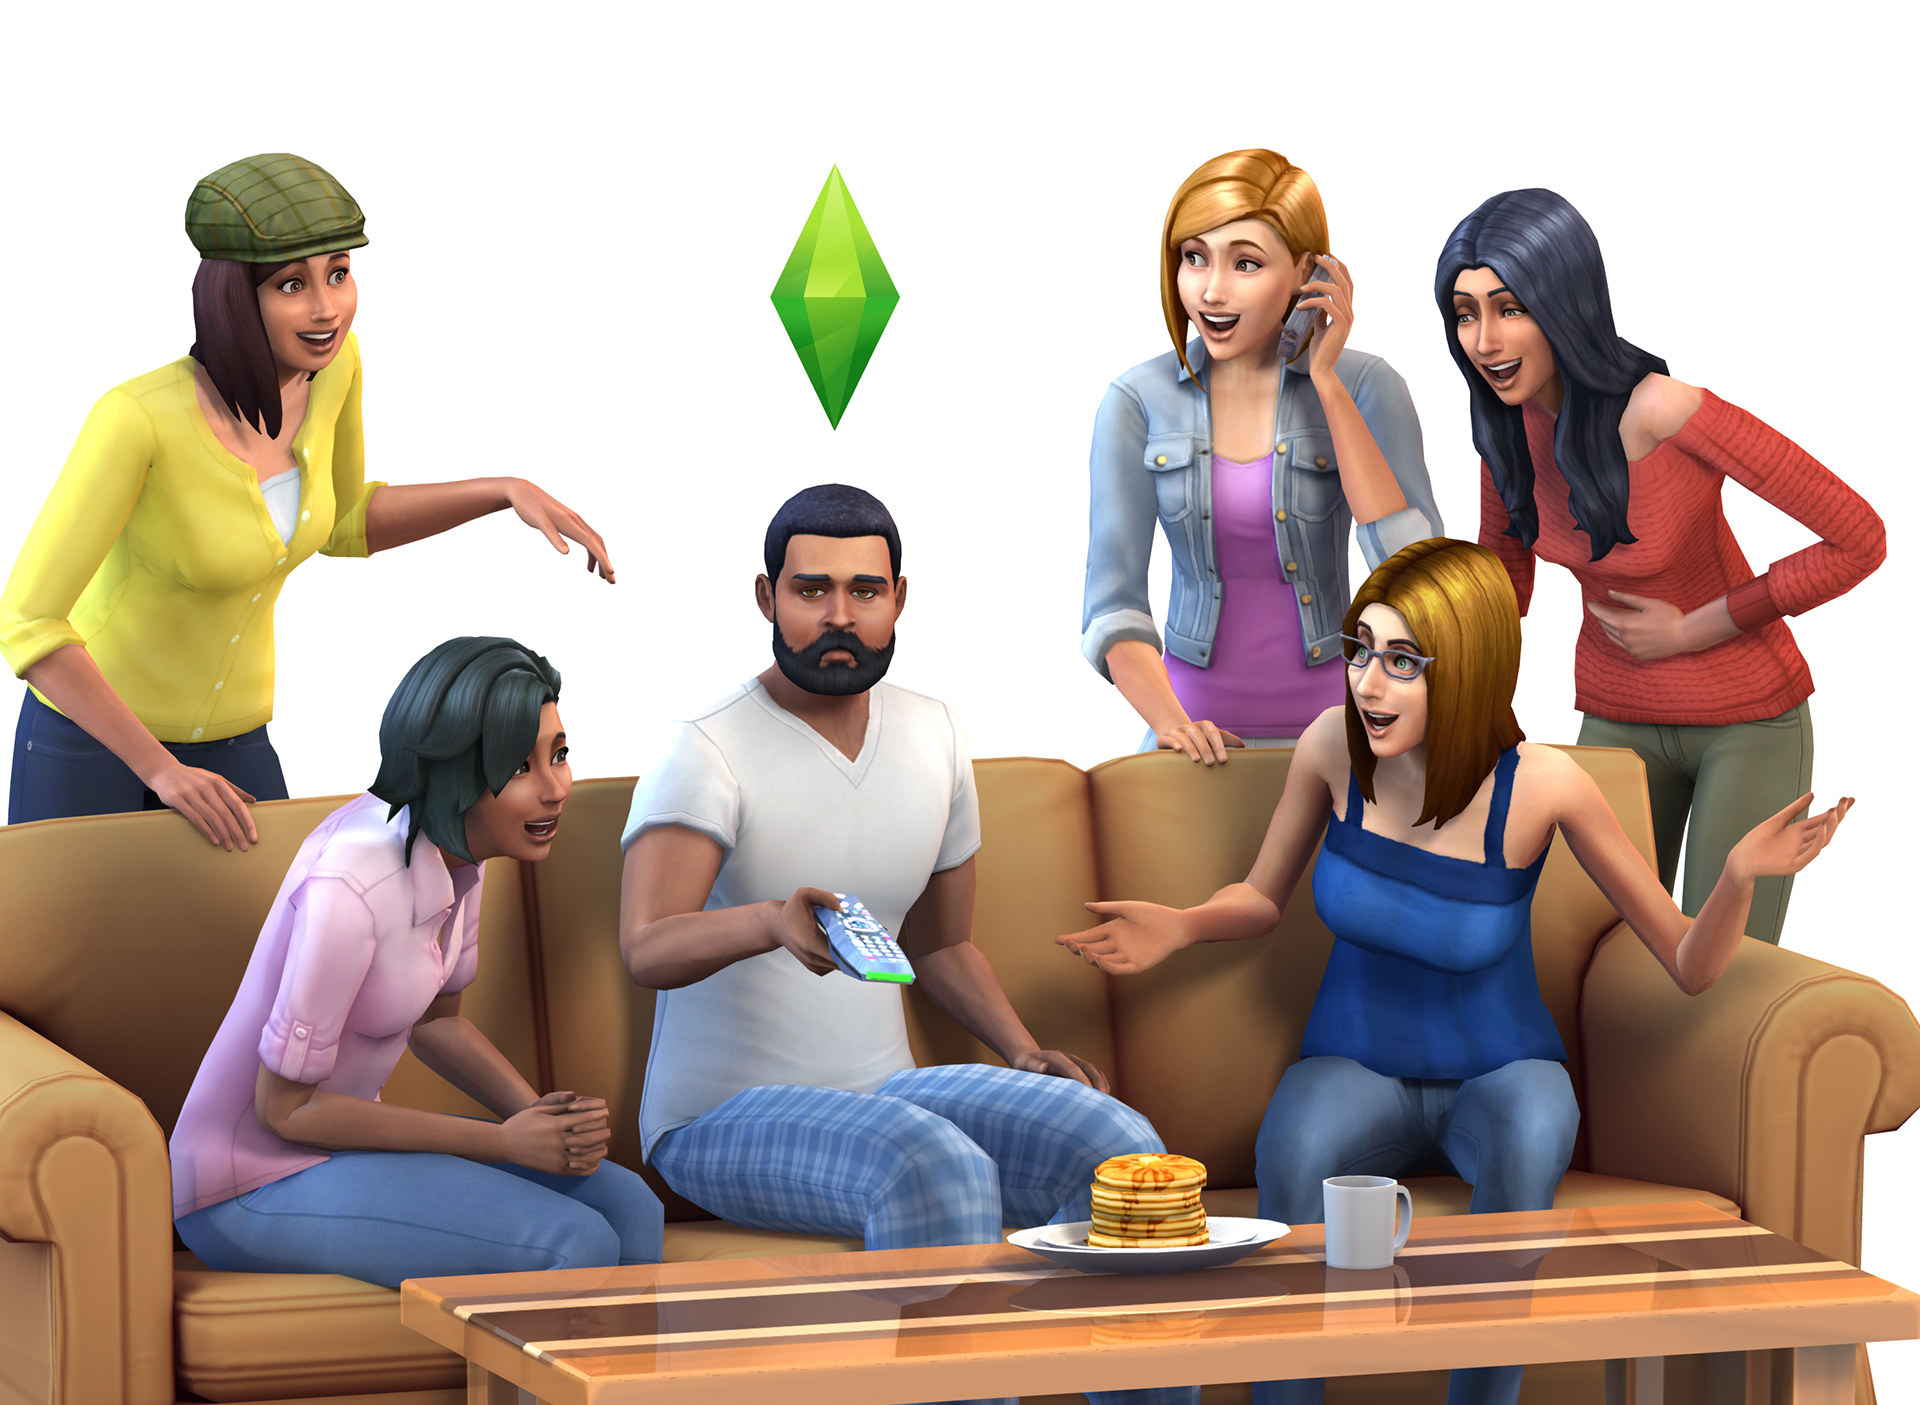 The Sims 4 Launches in Autumn 2014 – simcitizens